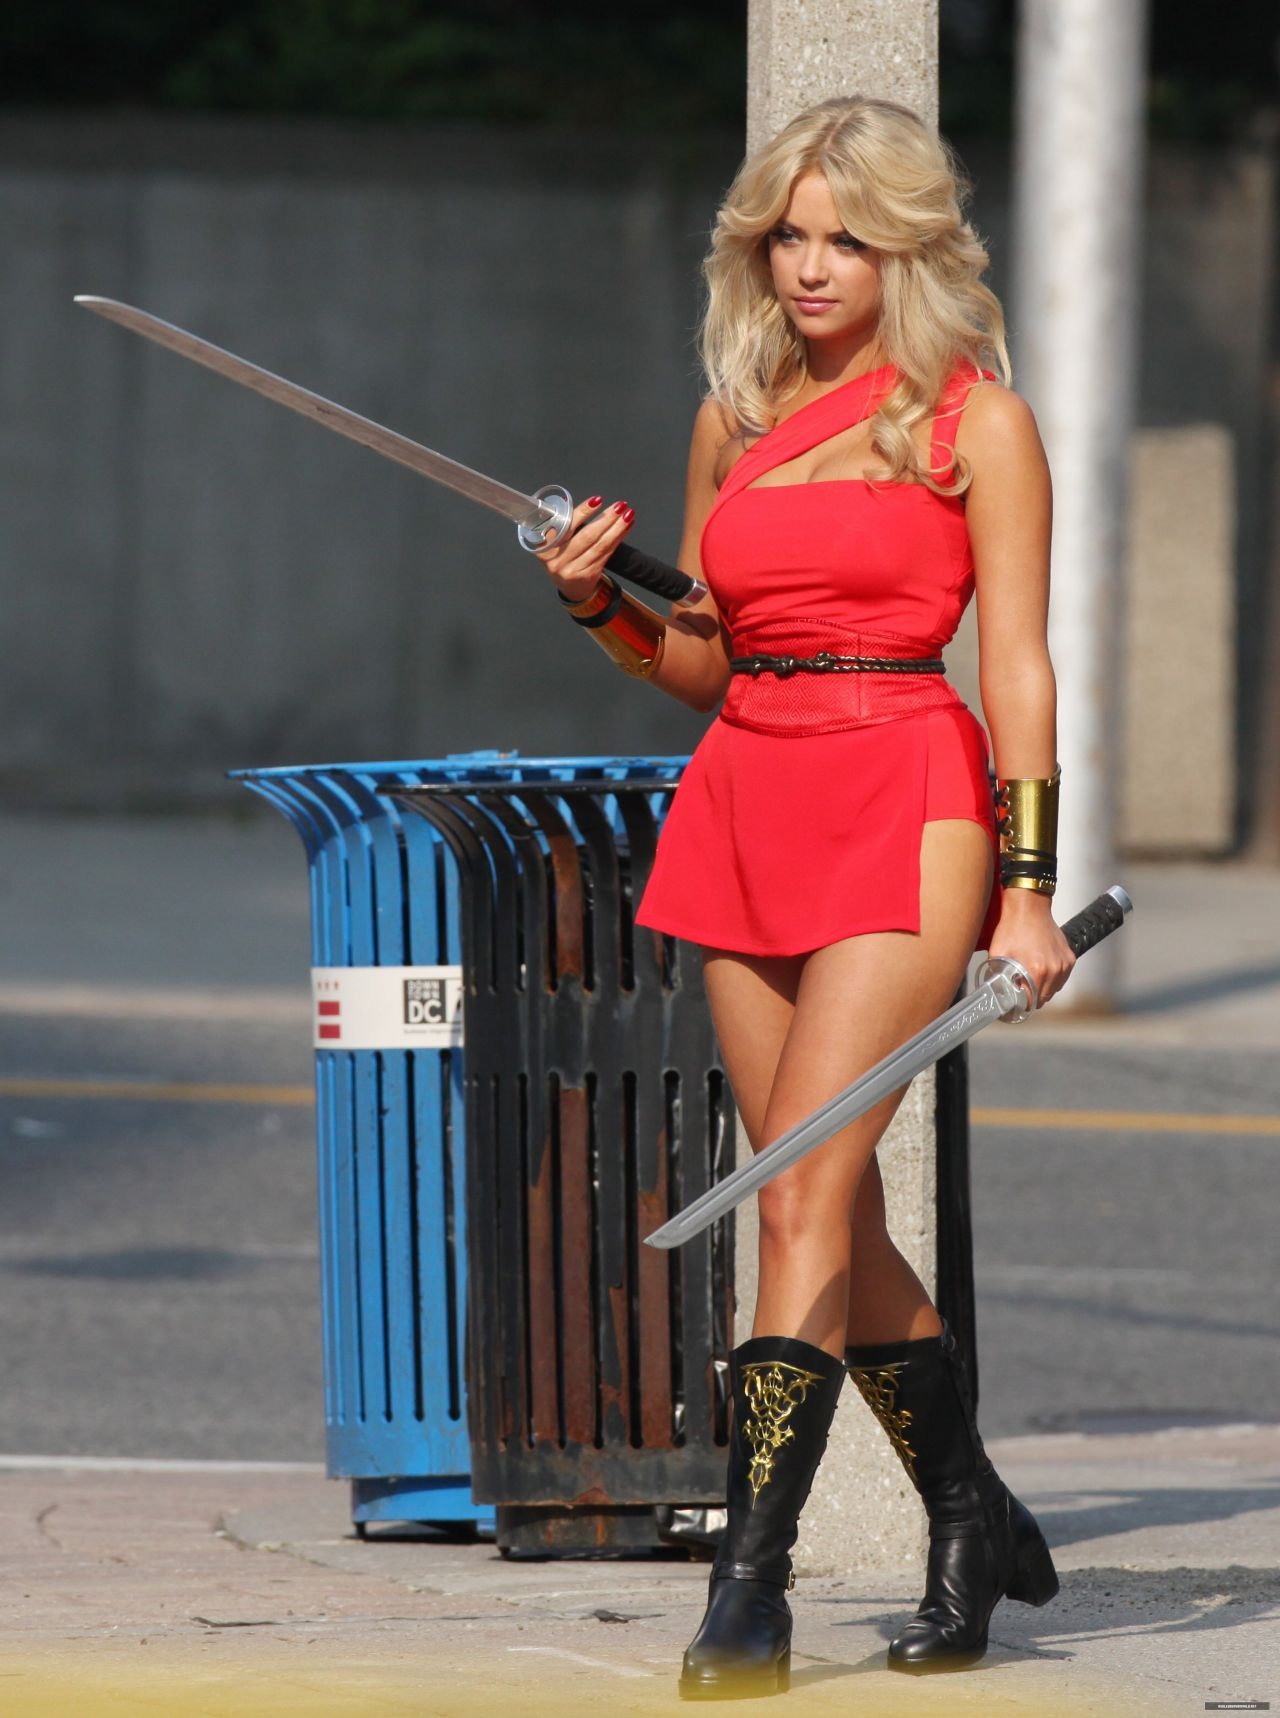 Ashley Benson Pixels 9 SAWFIRST Hot Celebrity Pictures